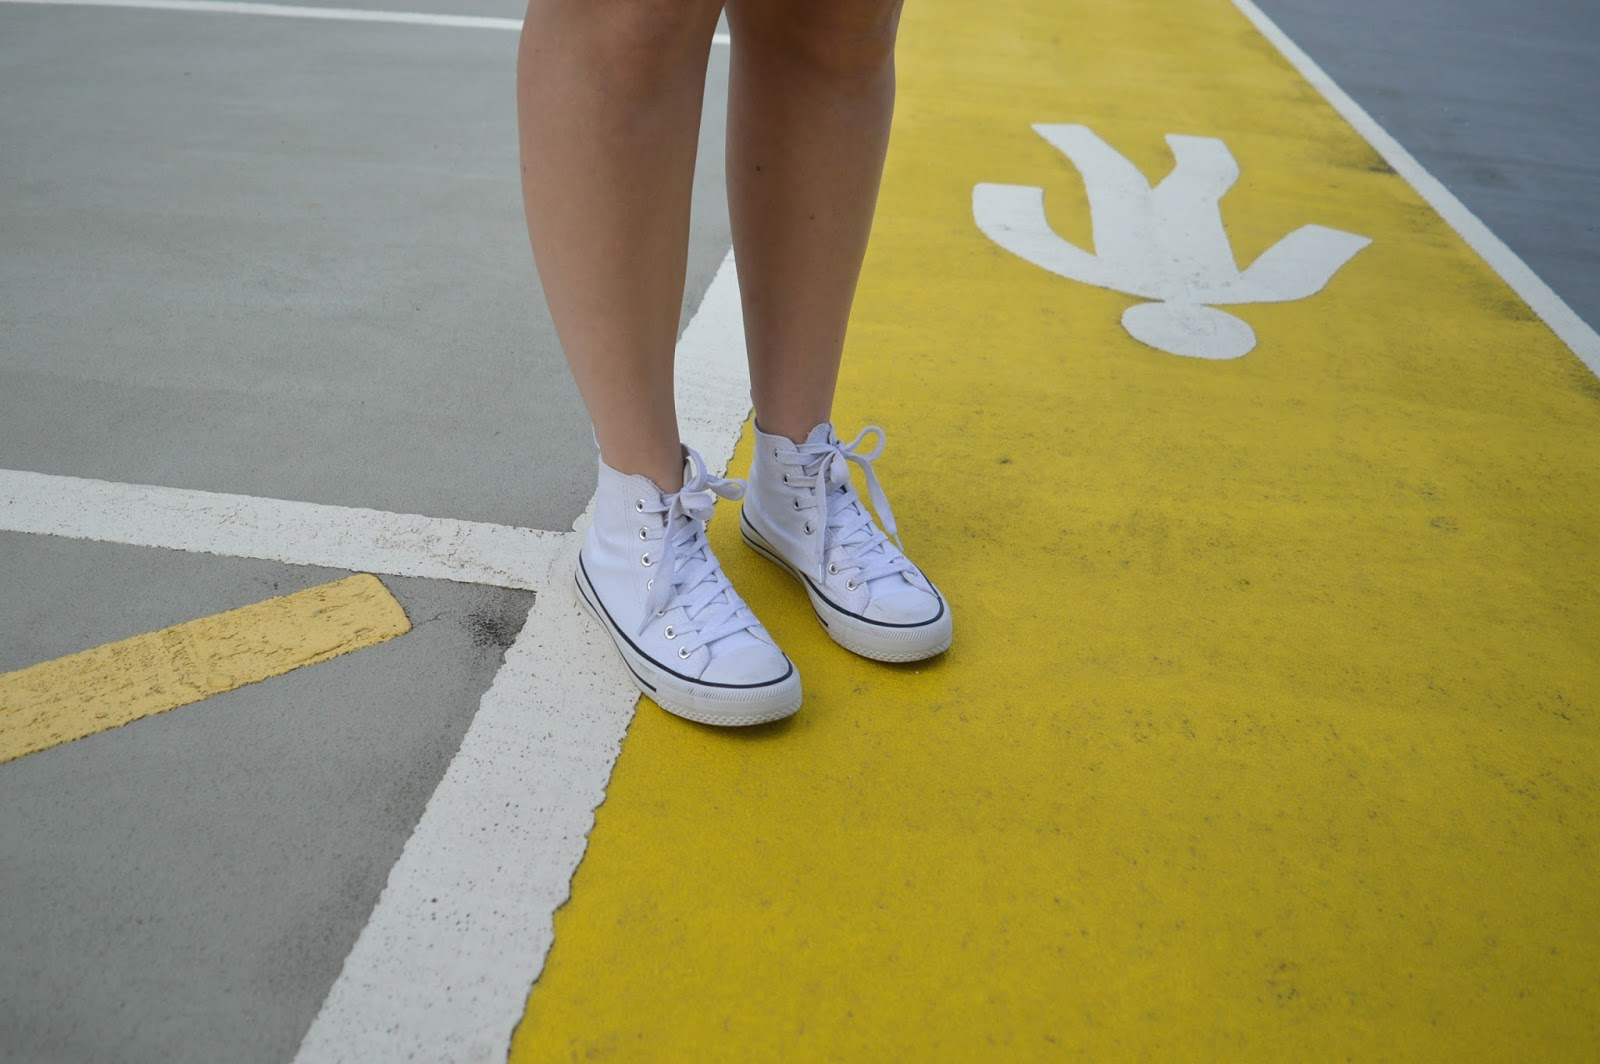 converse style shoes, white shoes, white sneakers, personal style blogger